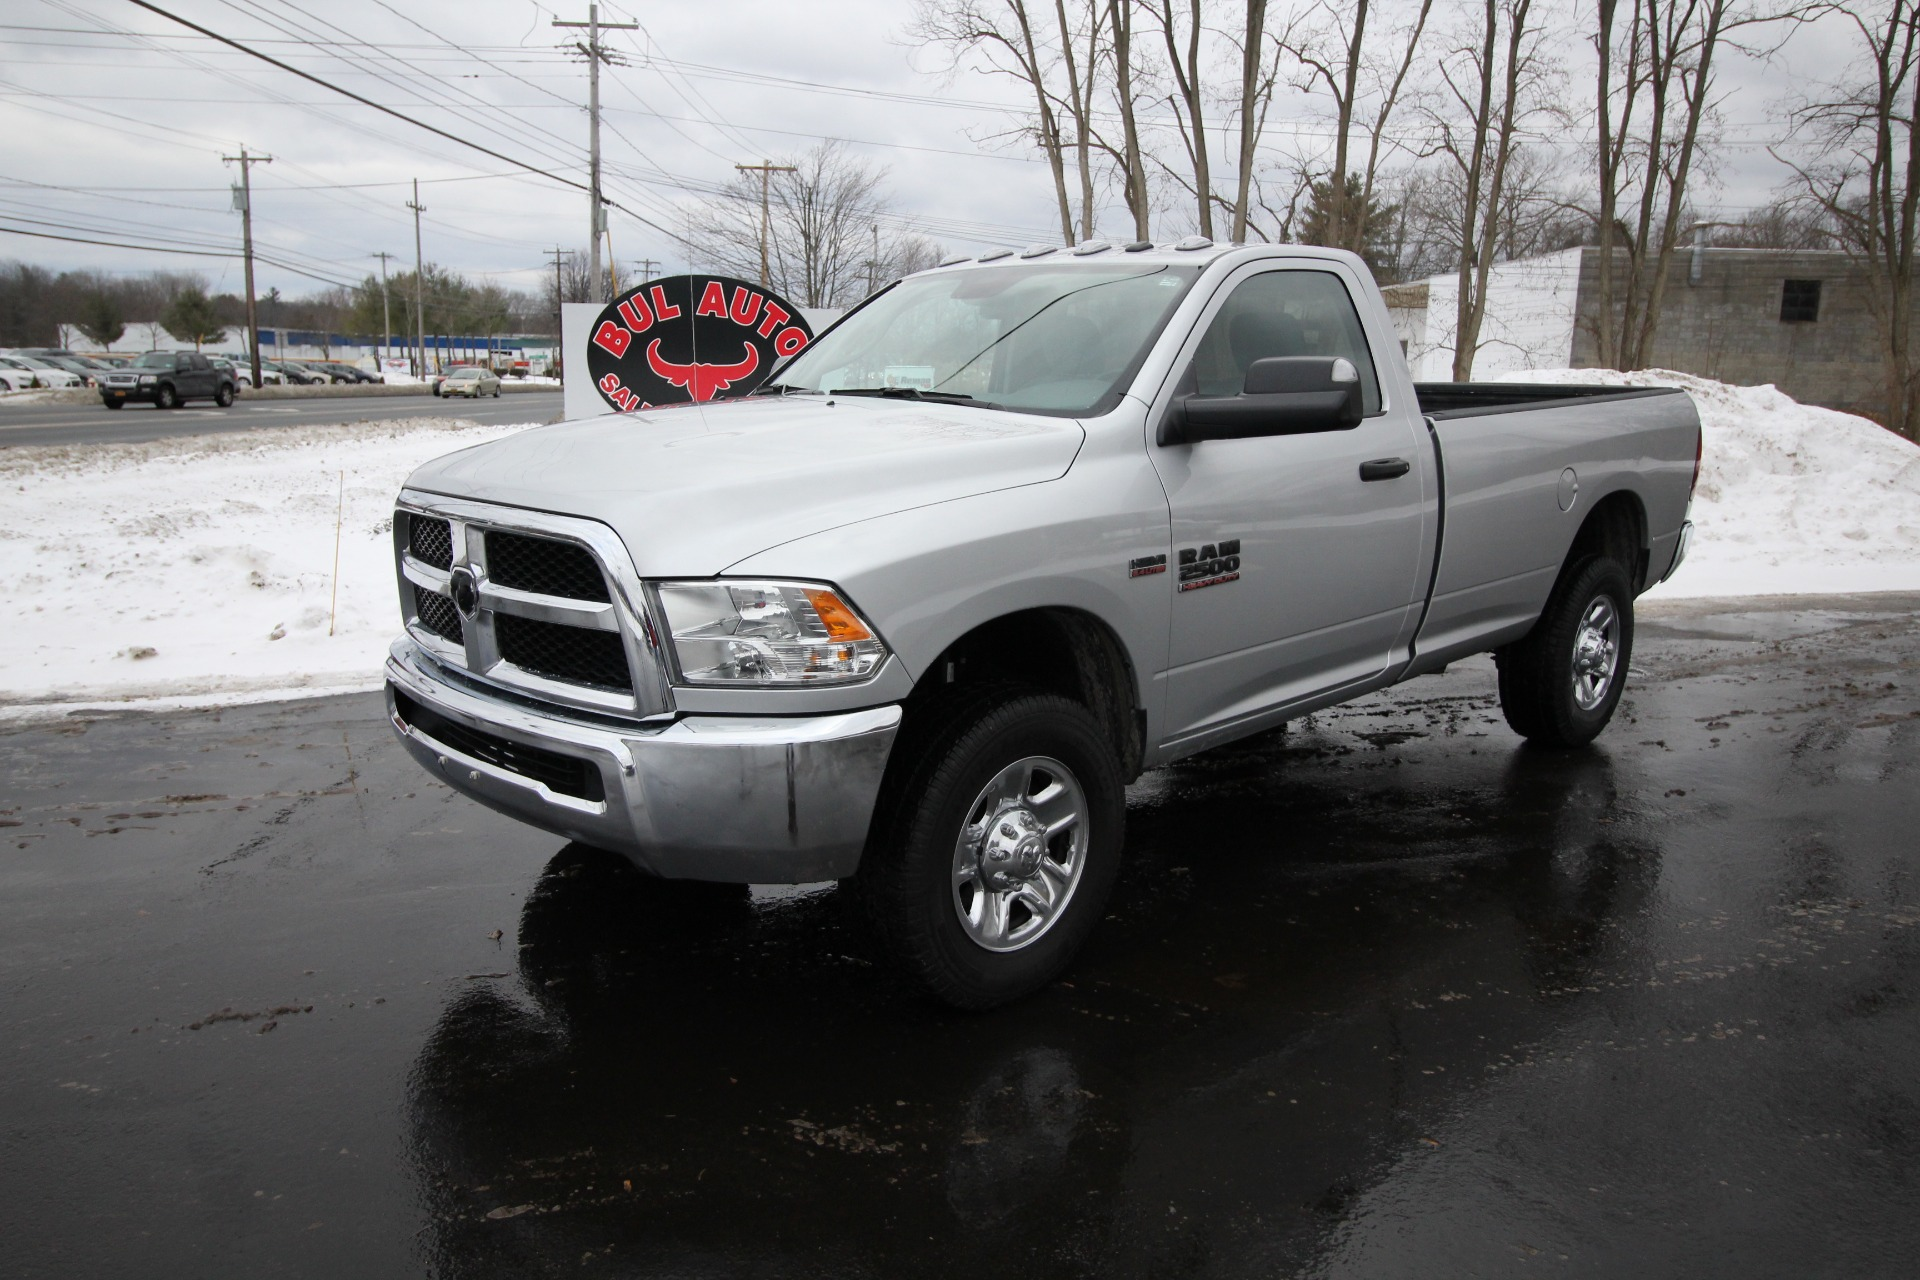 Cars for Sale Near Me 2500 Awesome 2016 Ram 2500 Tradesman Regular Cab 4wd Stock for Sale Near